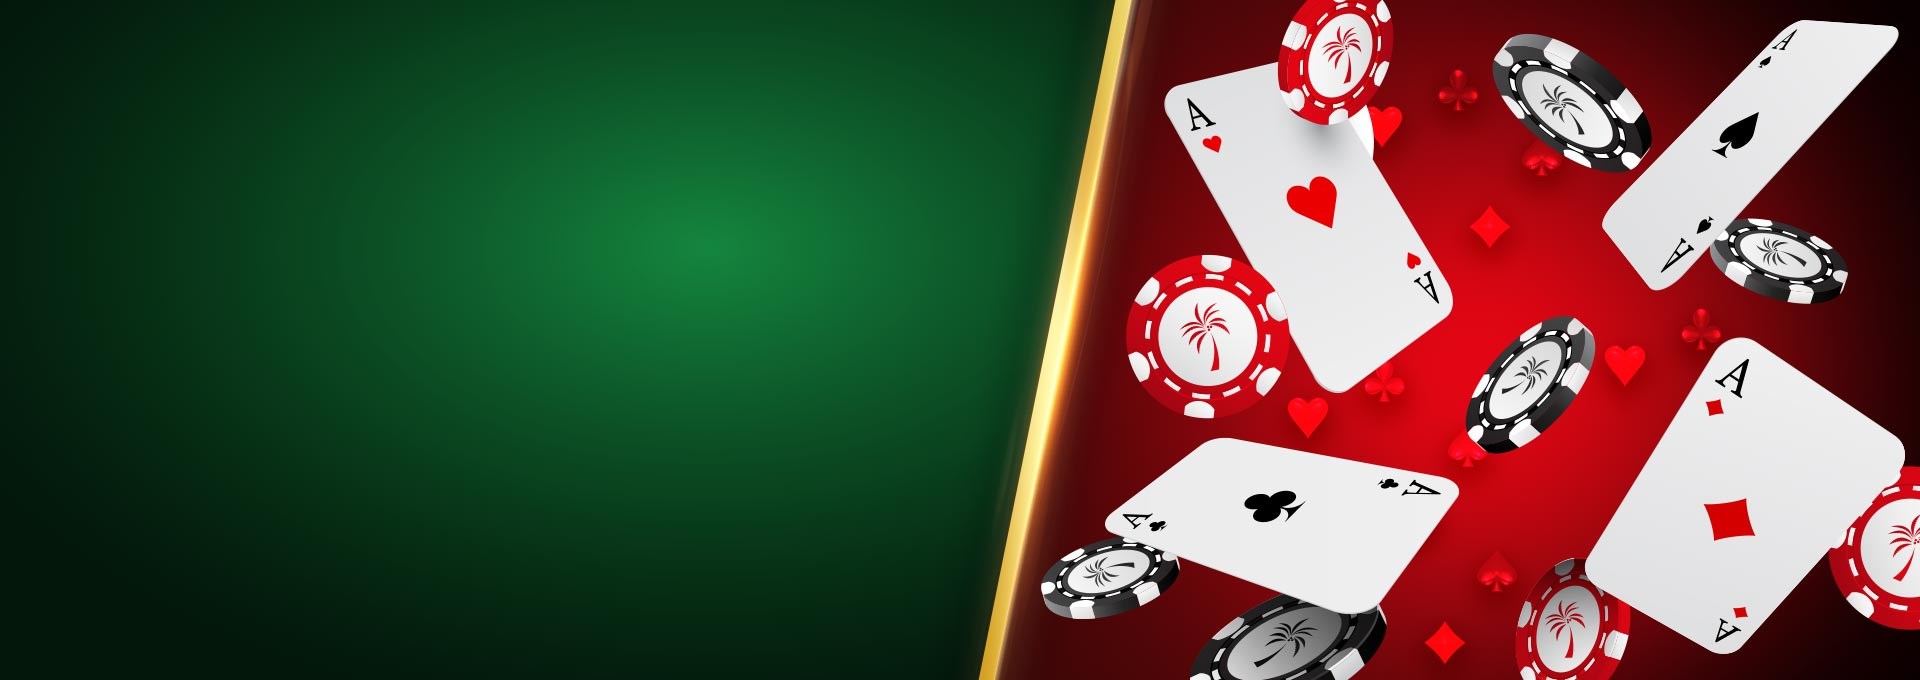 Access rich information that will get you started right now in online poker